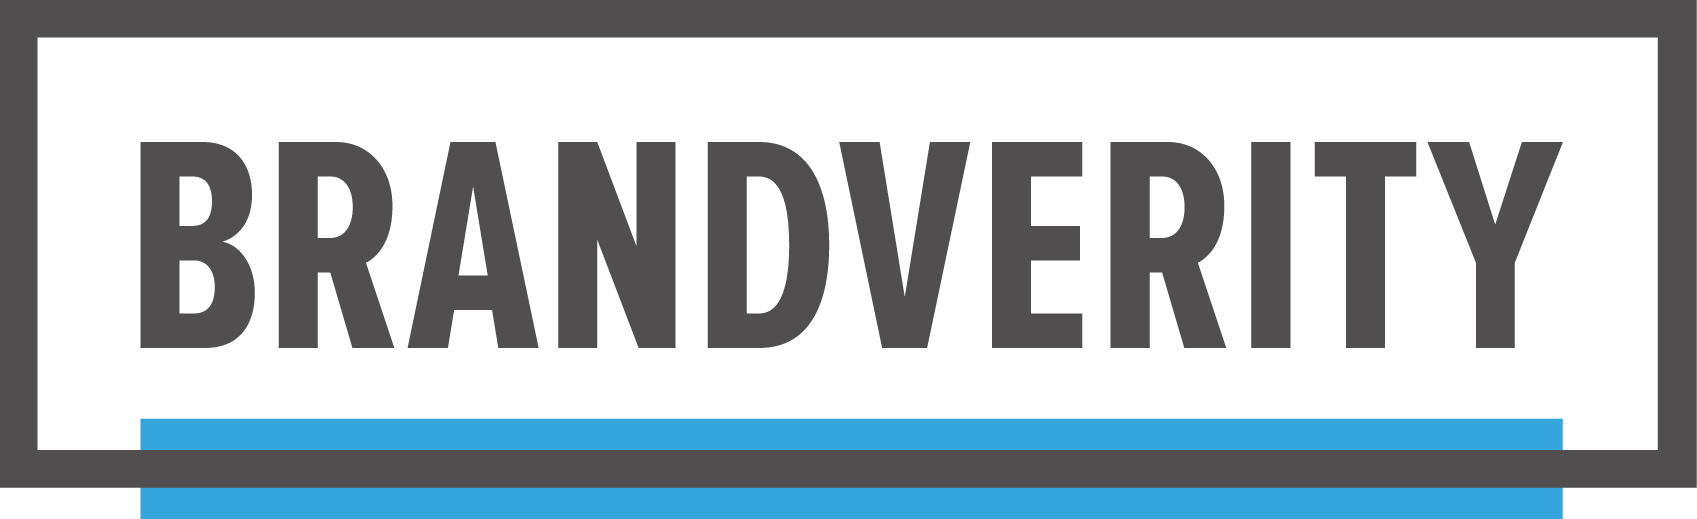 brandverity-logo2